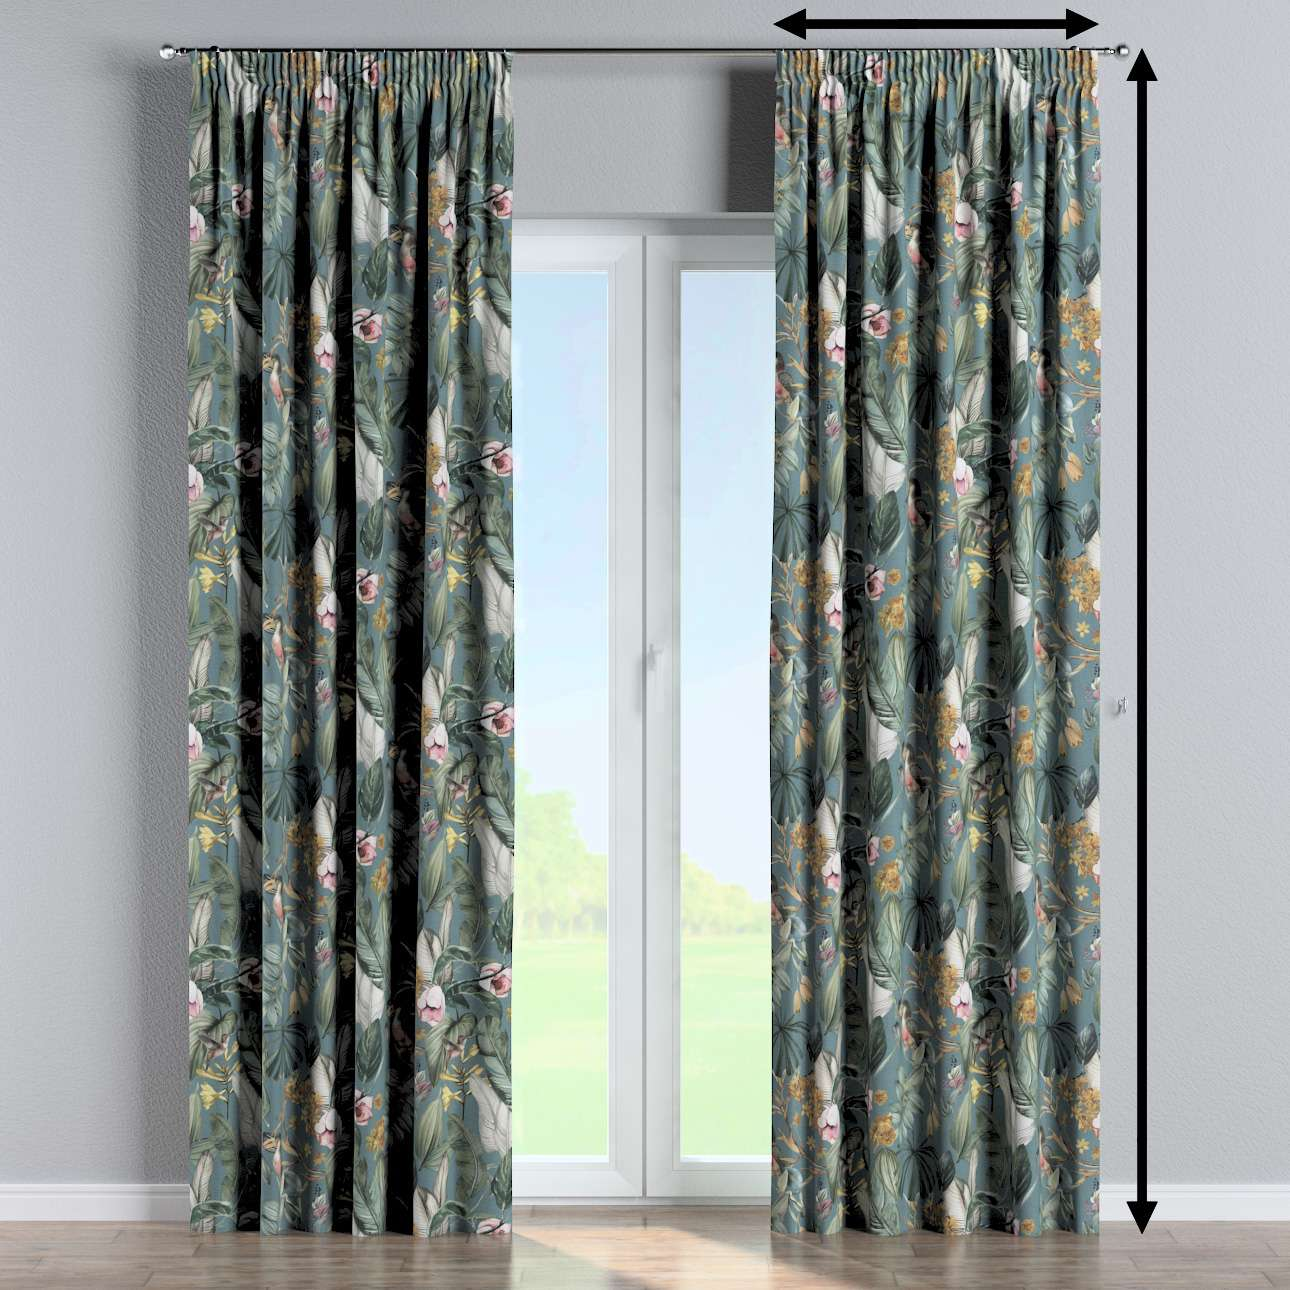 Pencil pleat curtains in collection Abigail, fabric: 143-24